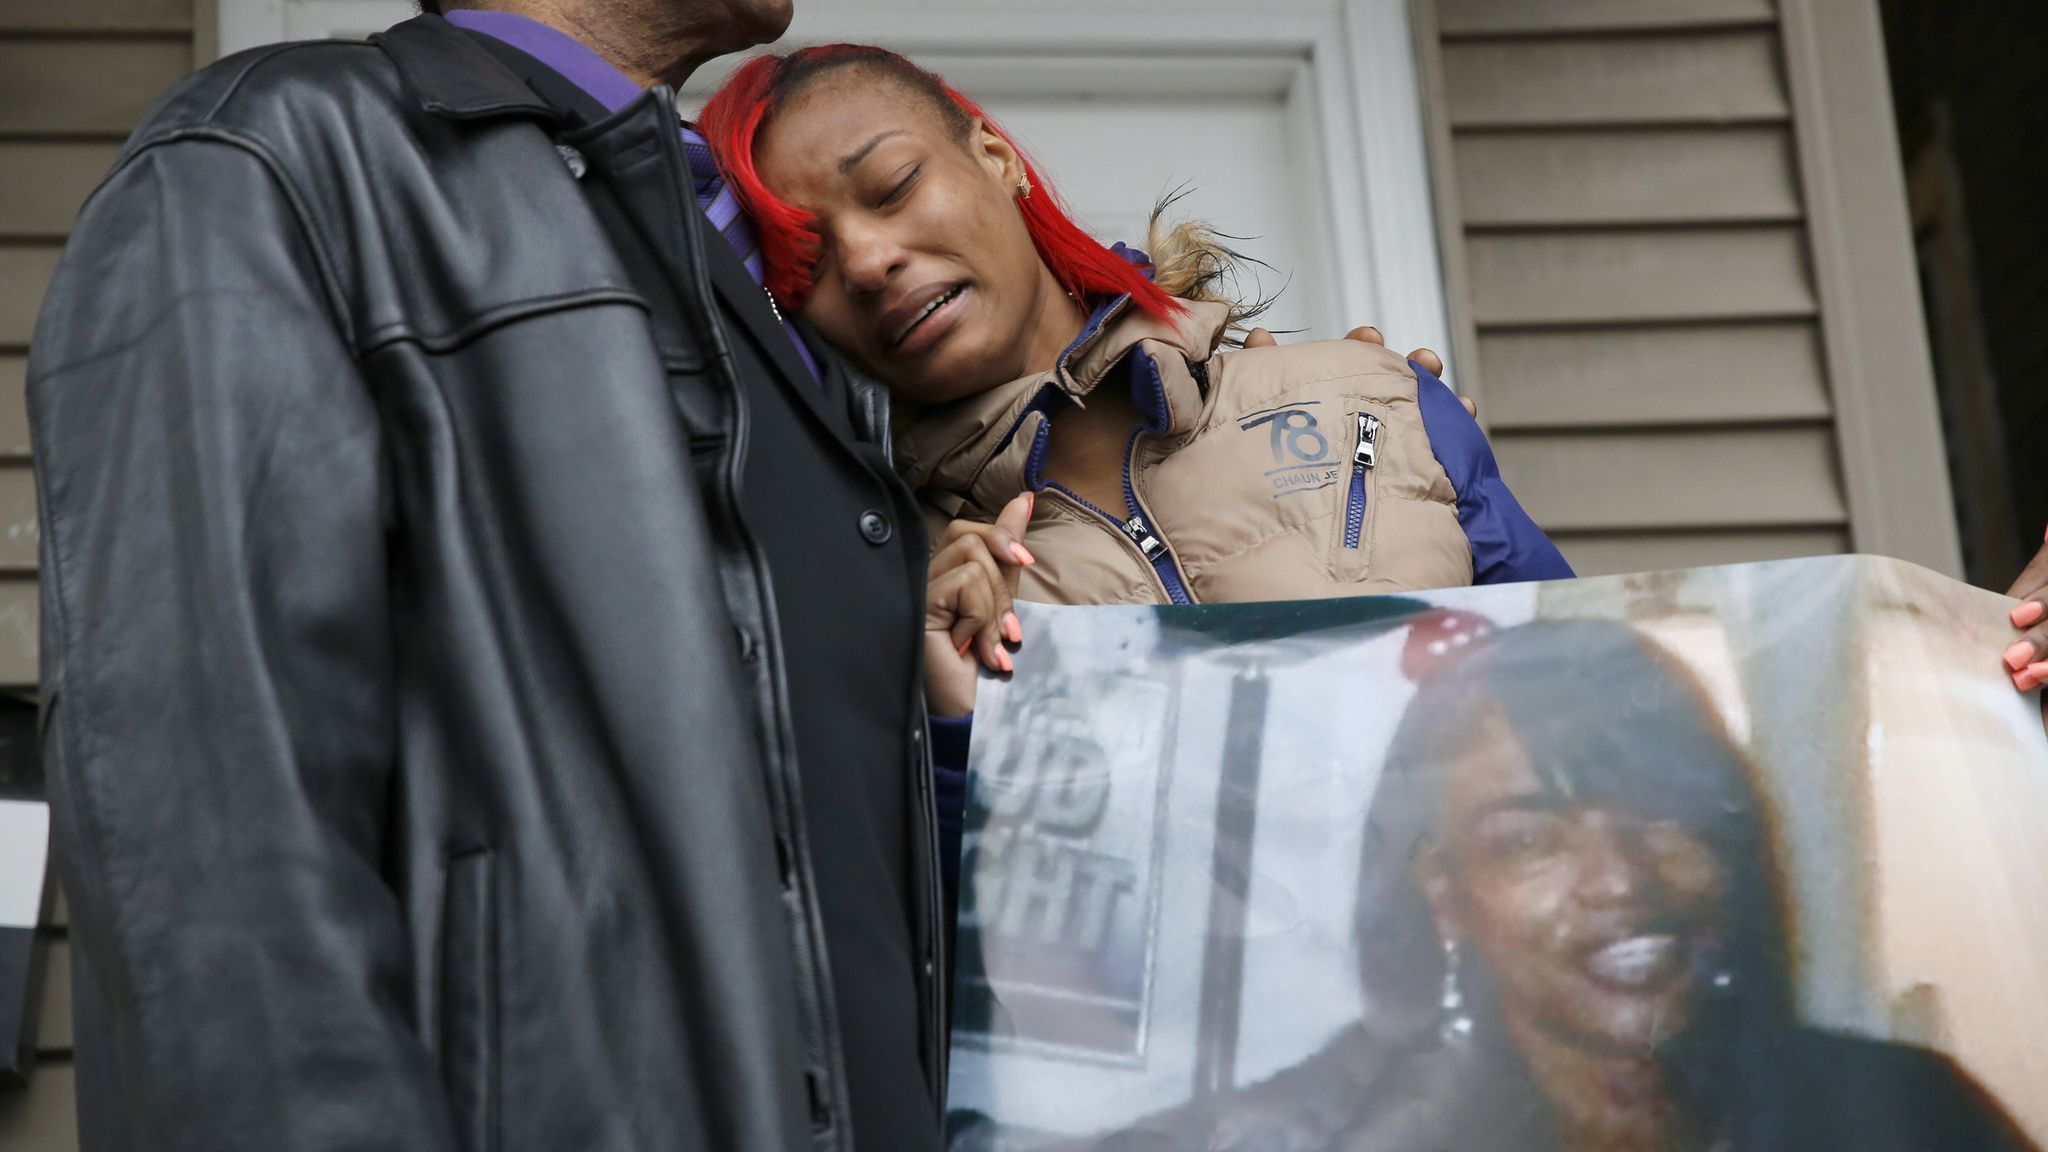 Aldermen approve paying $16 million to family of Bettie Jones, who was accidentally shot by Chicago cop | Chicago Tribune